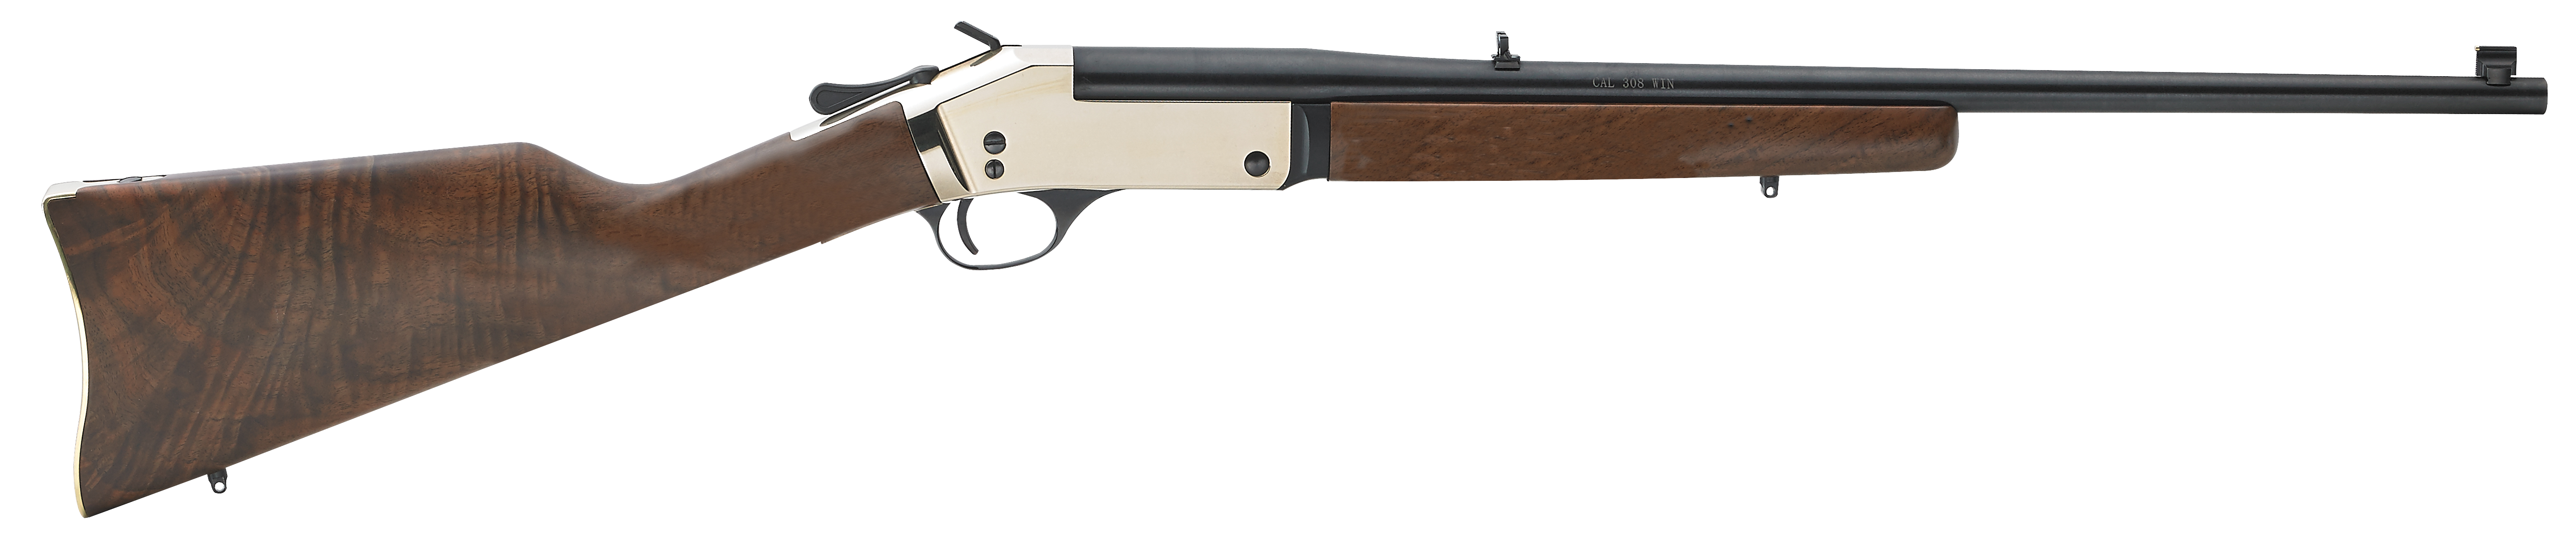 Henry Single Shot Brass Break Open Rifle - 357 Mag/38 Spl 22